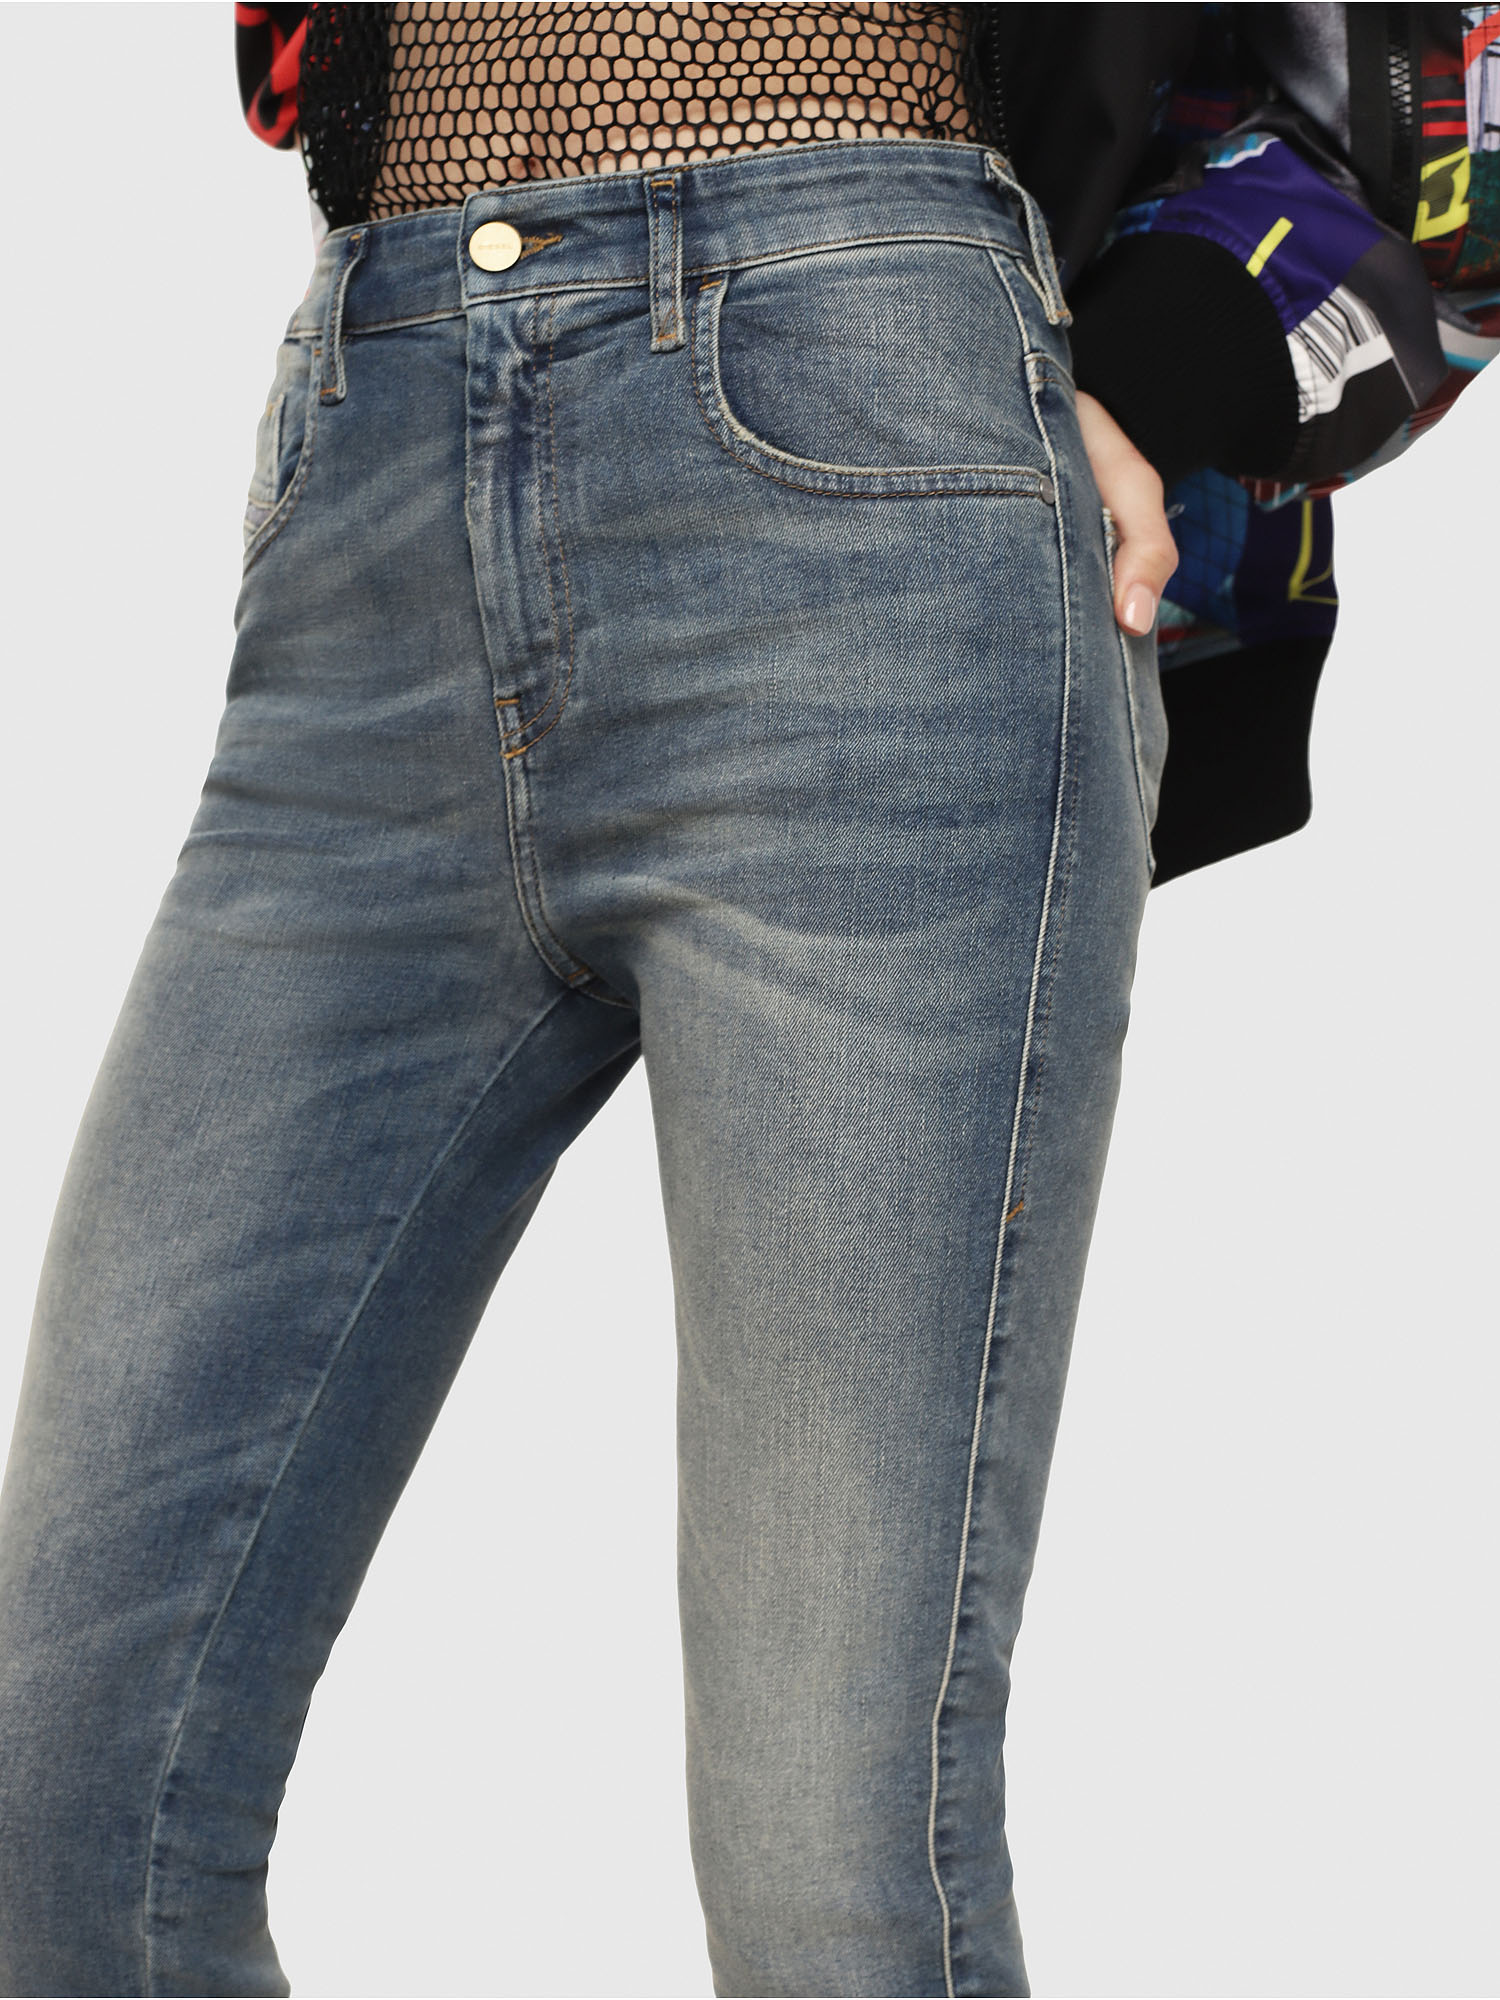 Diesel - Slandy High 085AZ,  - Jeans - Image 3